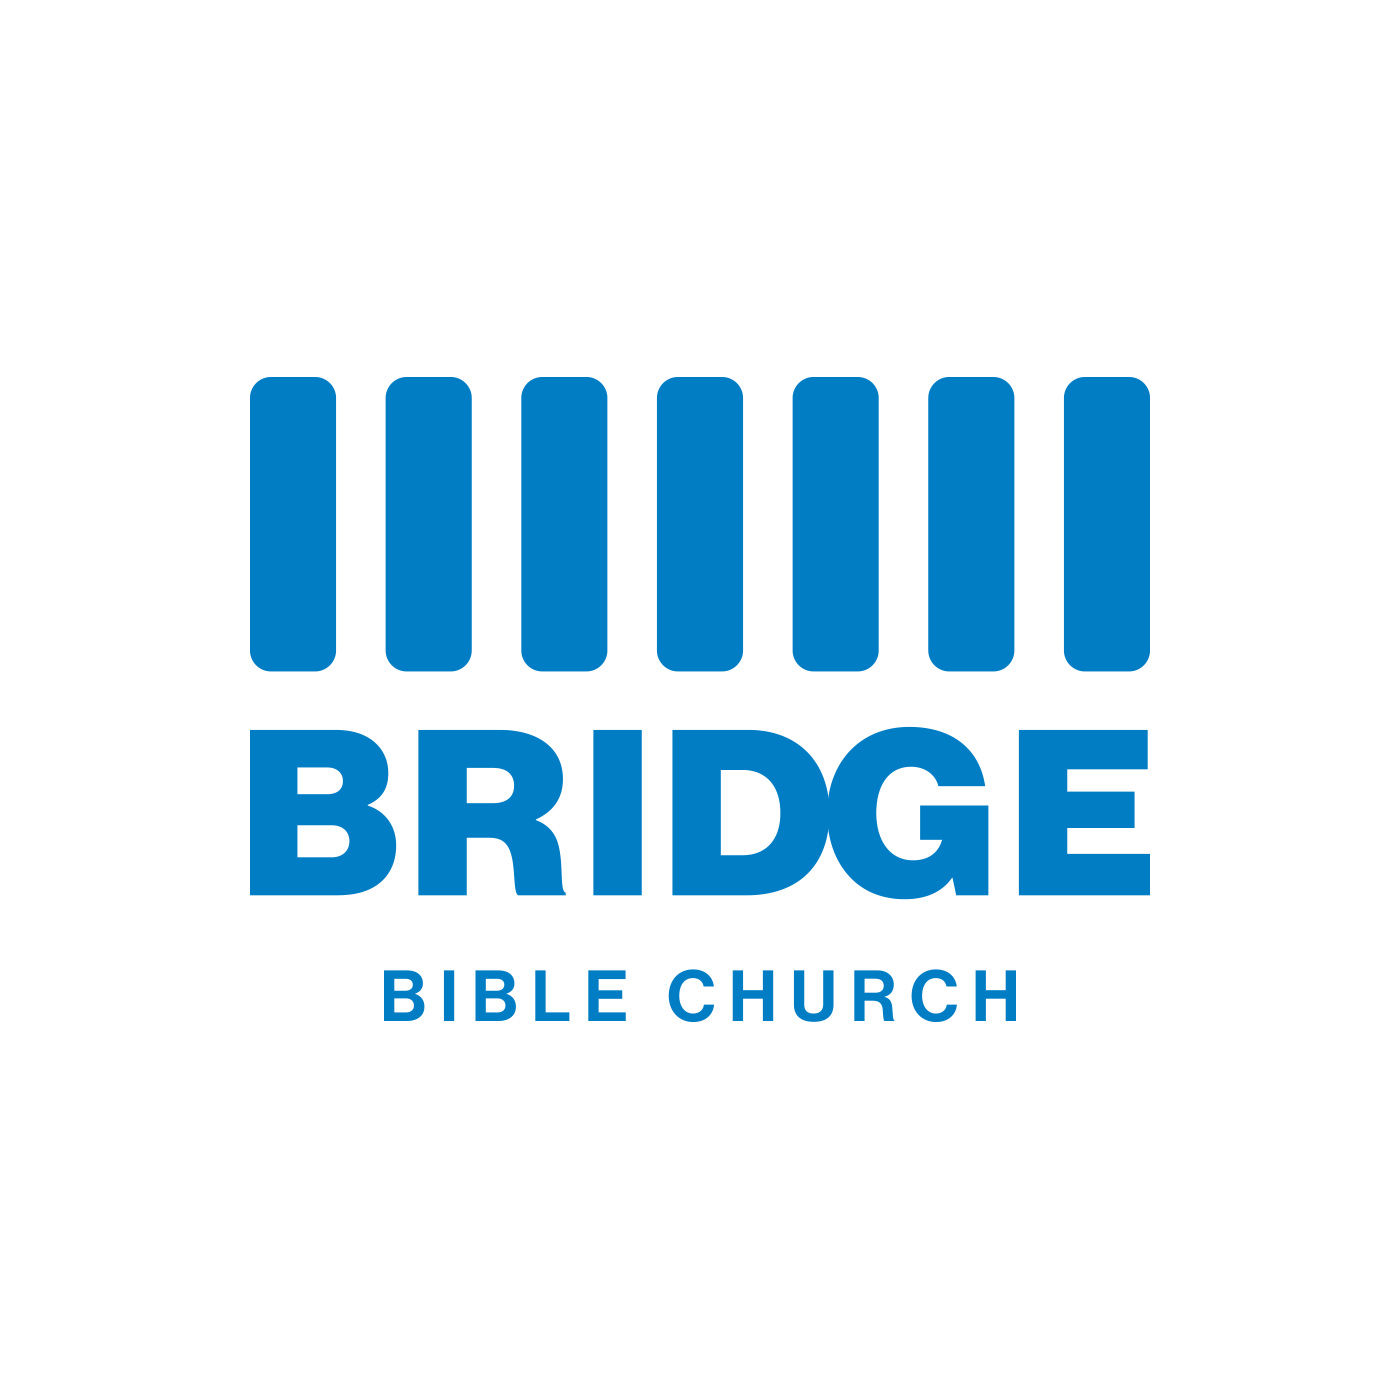 The Bridge Bible Church